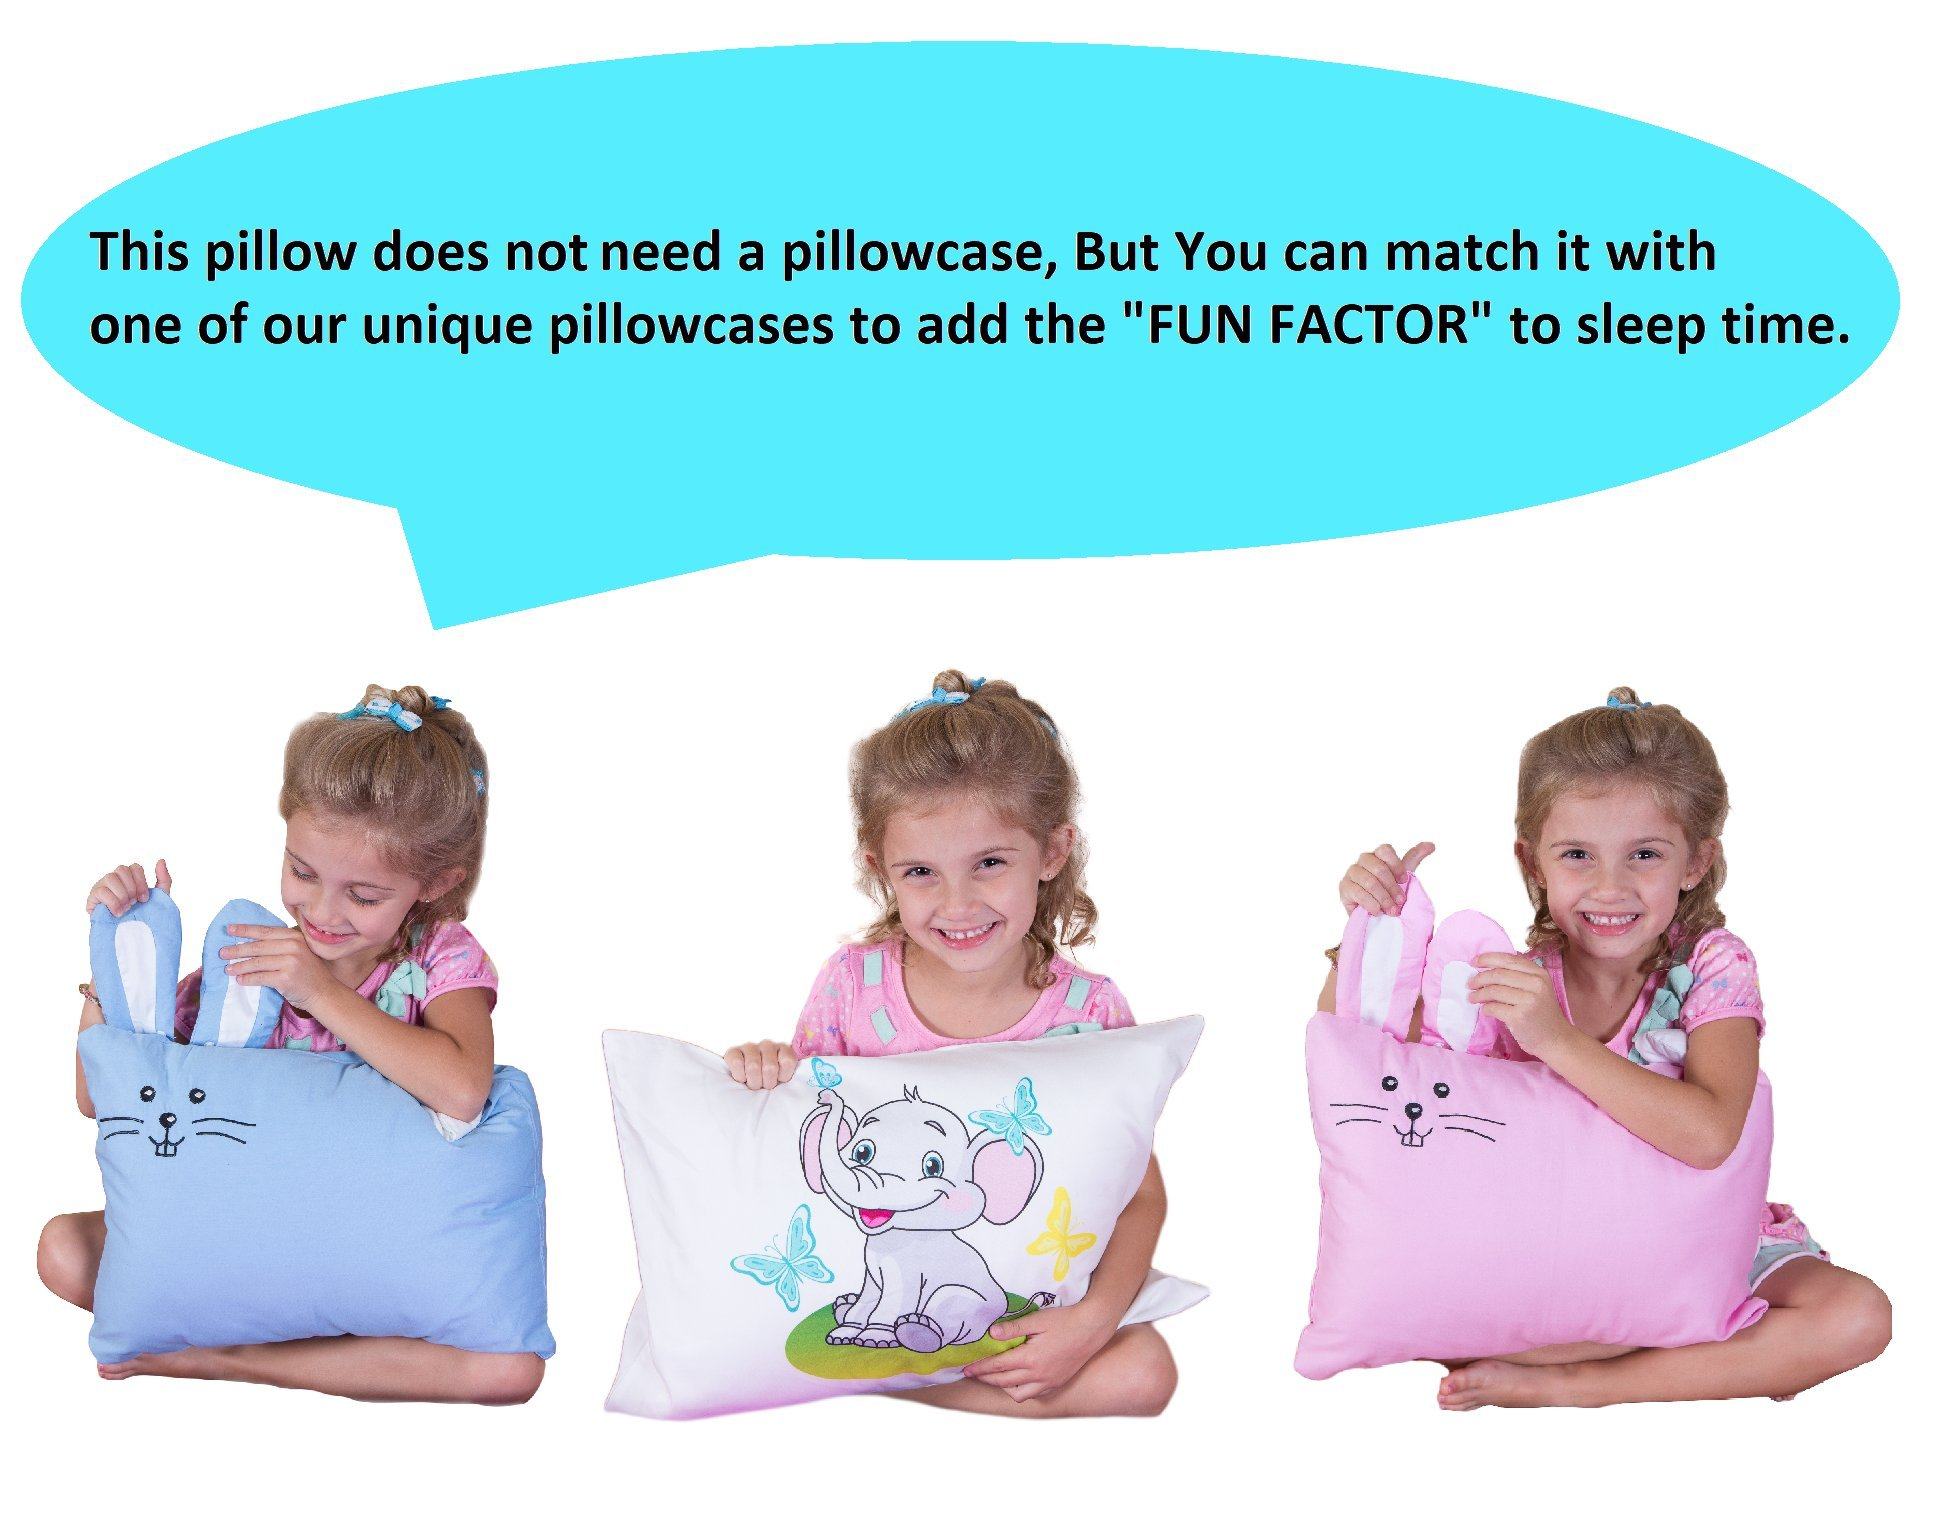 kinder Fluff Toddler/Travel Pillow -No extra Pillowcase/Sham needed-The only Pillow with 300T Cotton and Cluster fiber fill- Hypoallergenic and Machine washable by kinder Fluff (Image #5)